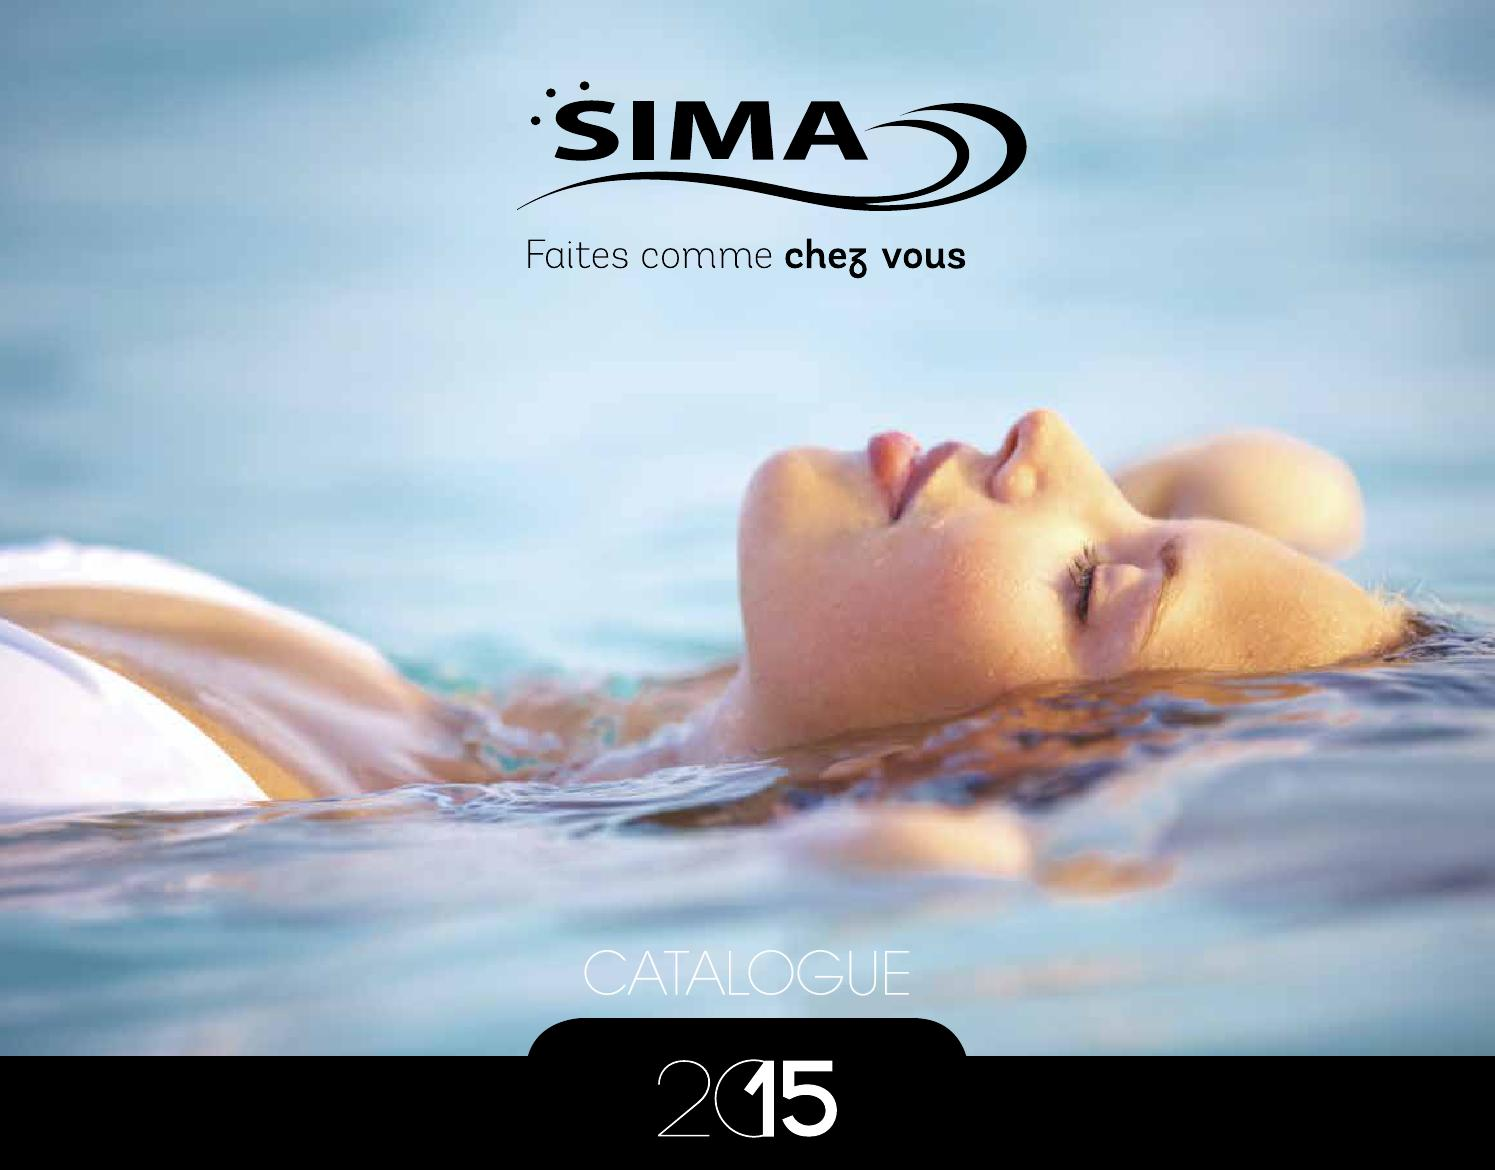 Piscines st louis by piscines st louis issuu for Sima piscine